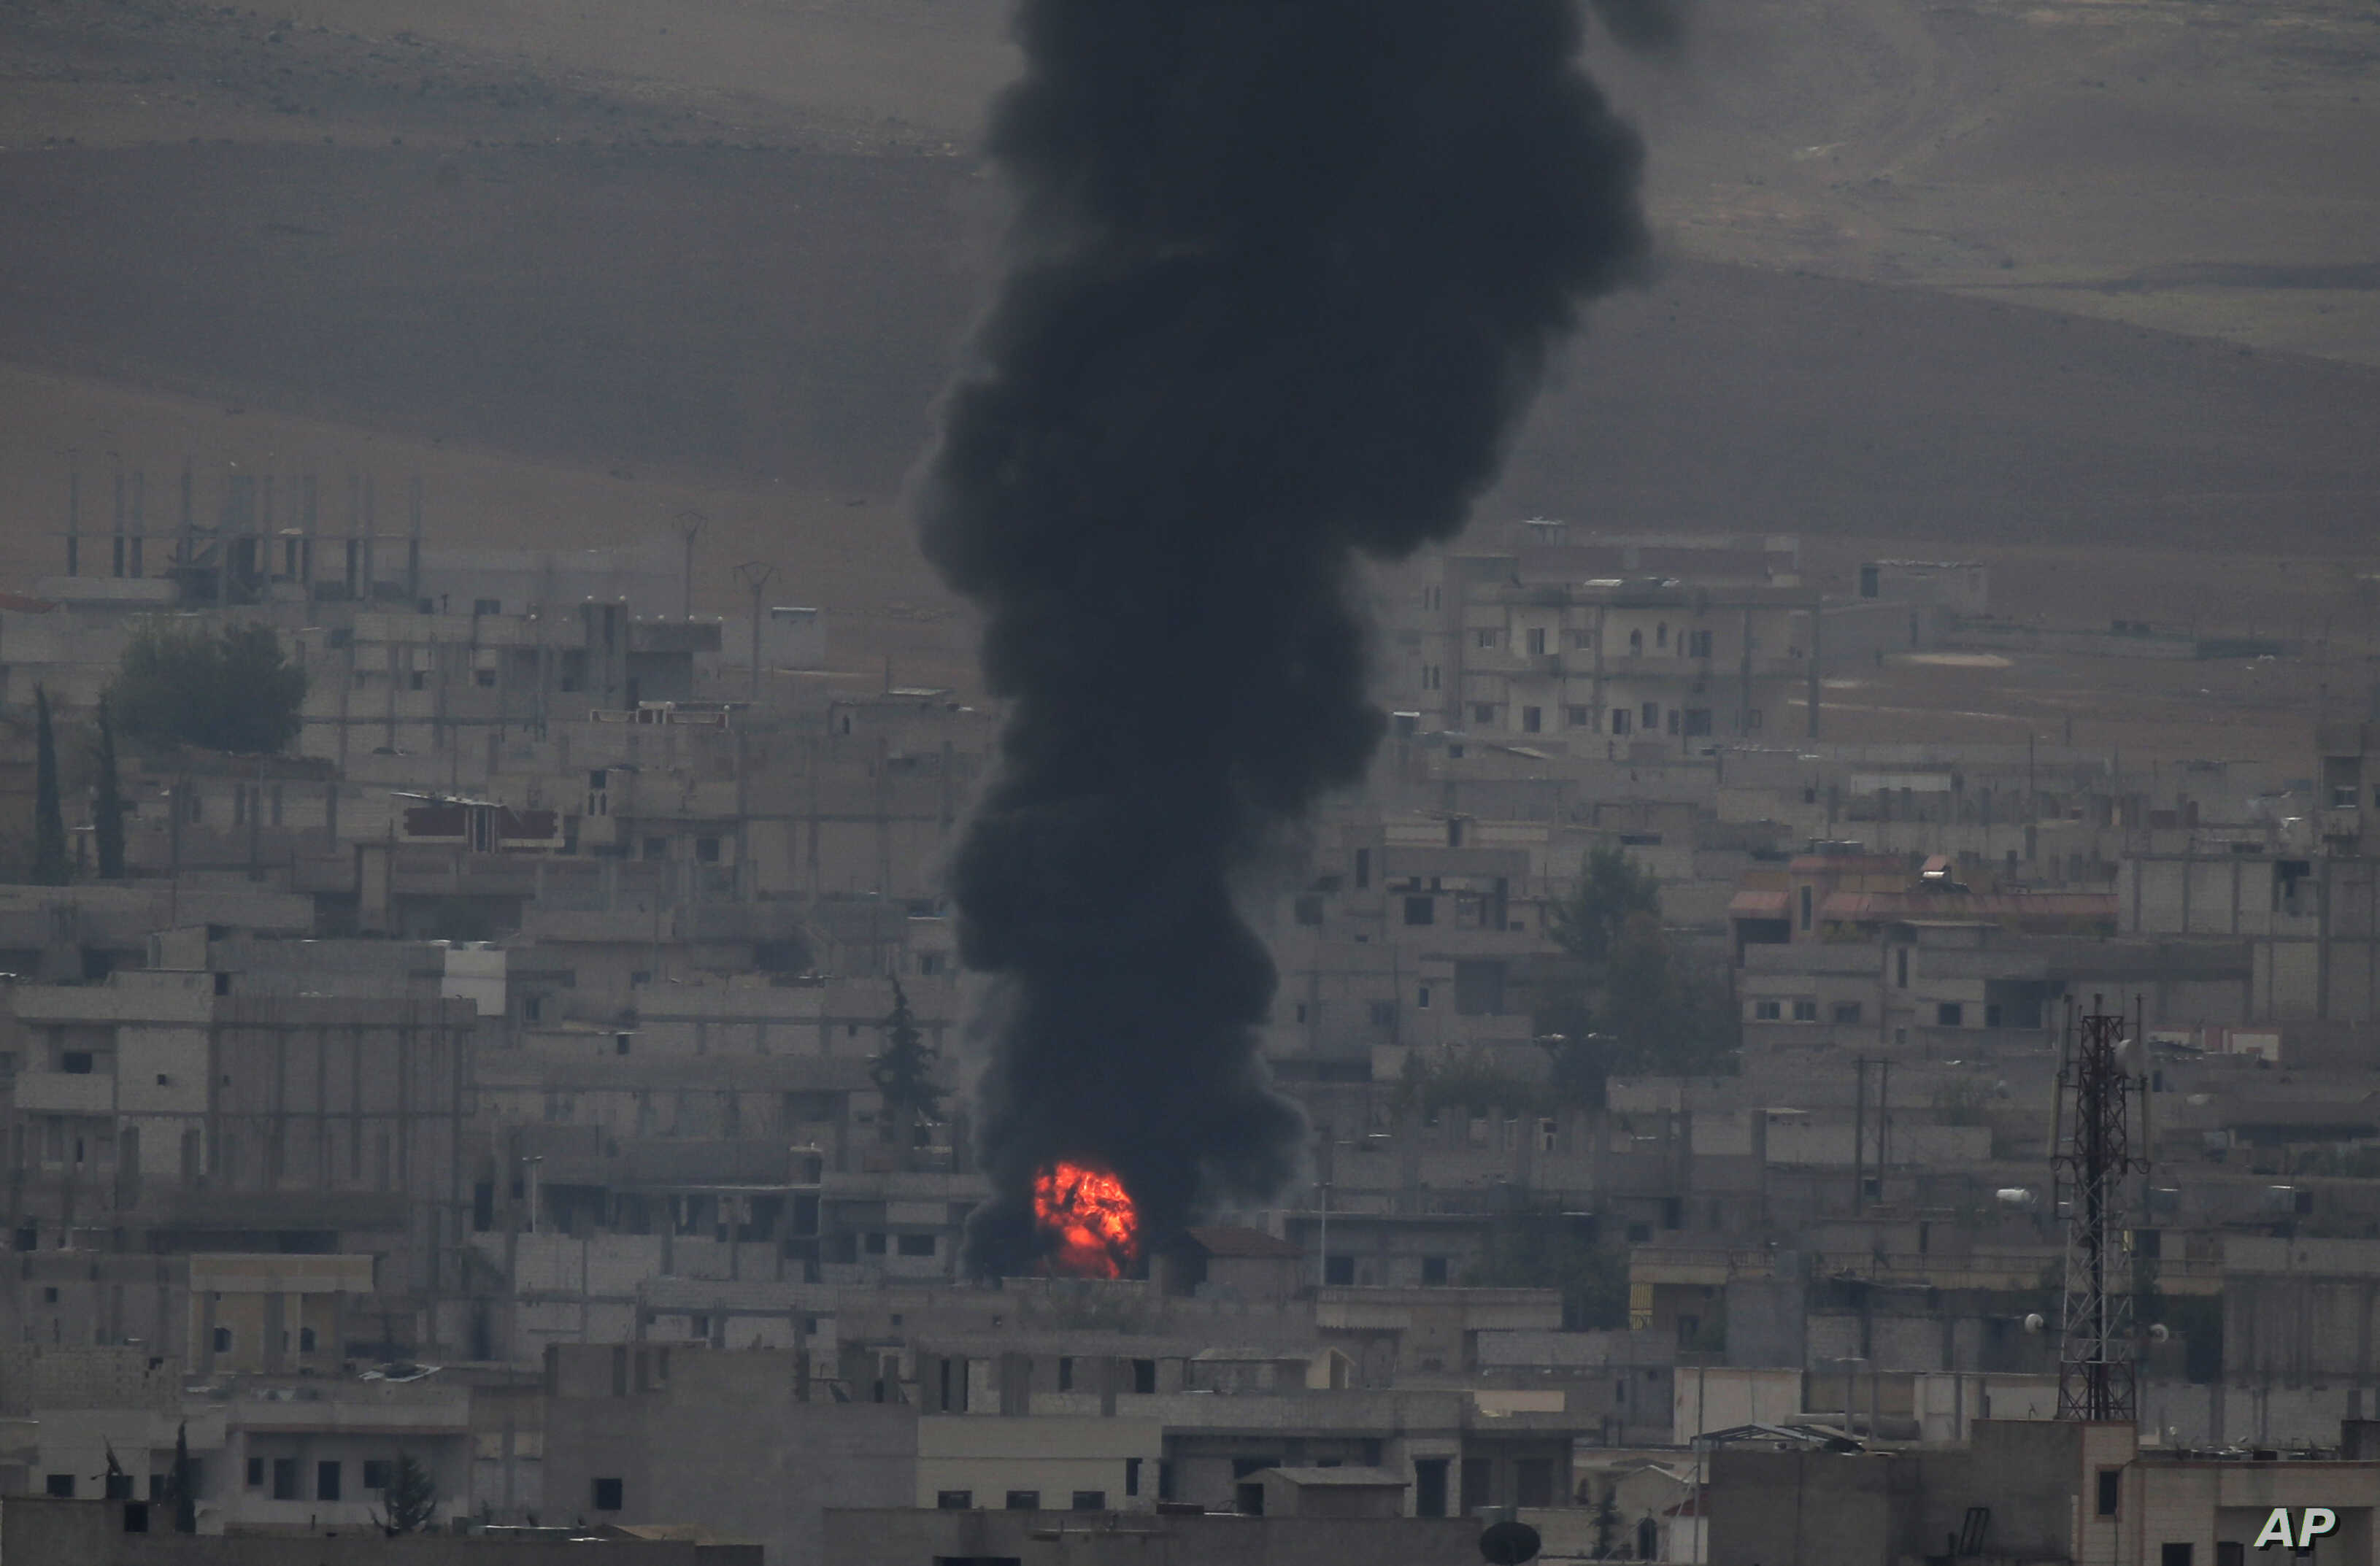 Thick smoke and flames from a fire rises following a strike in Kobani, Syria, during fighting between Syrian Kurds and the militants of the Islamic State group, as seen from a hilltop on the outskirts of Suruc, at the Turkey-Syria border, Oct. 19, 20...